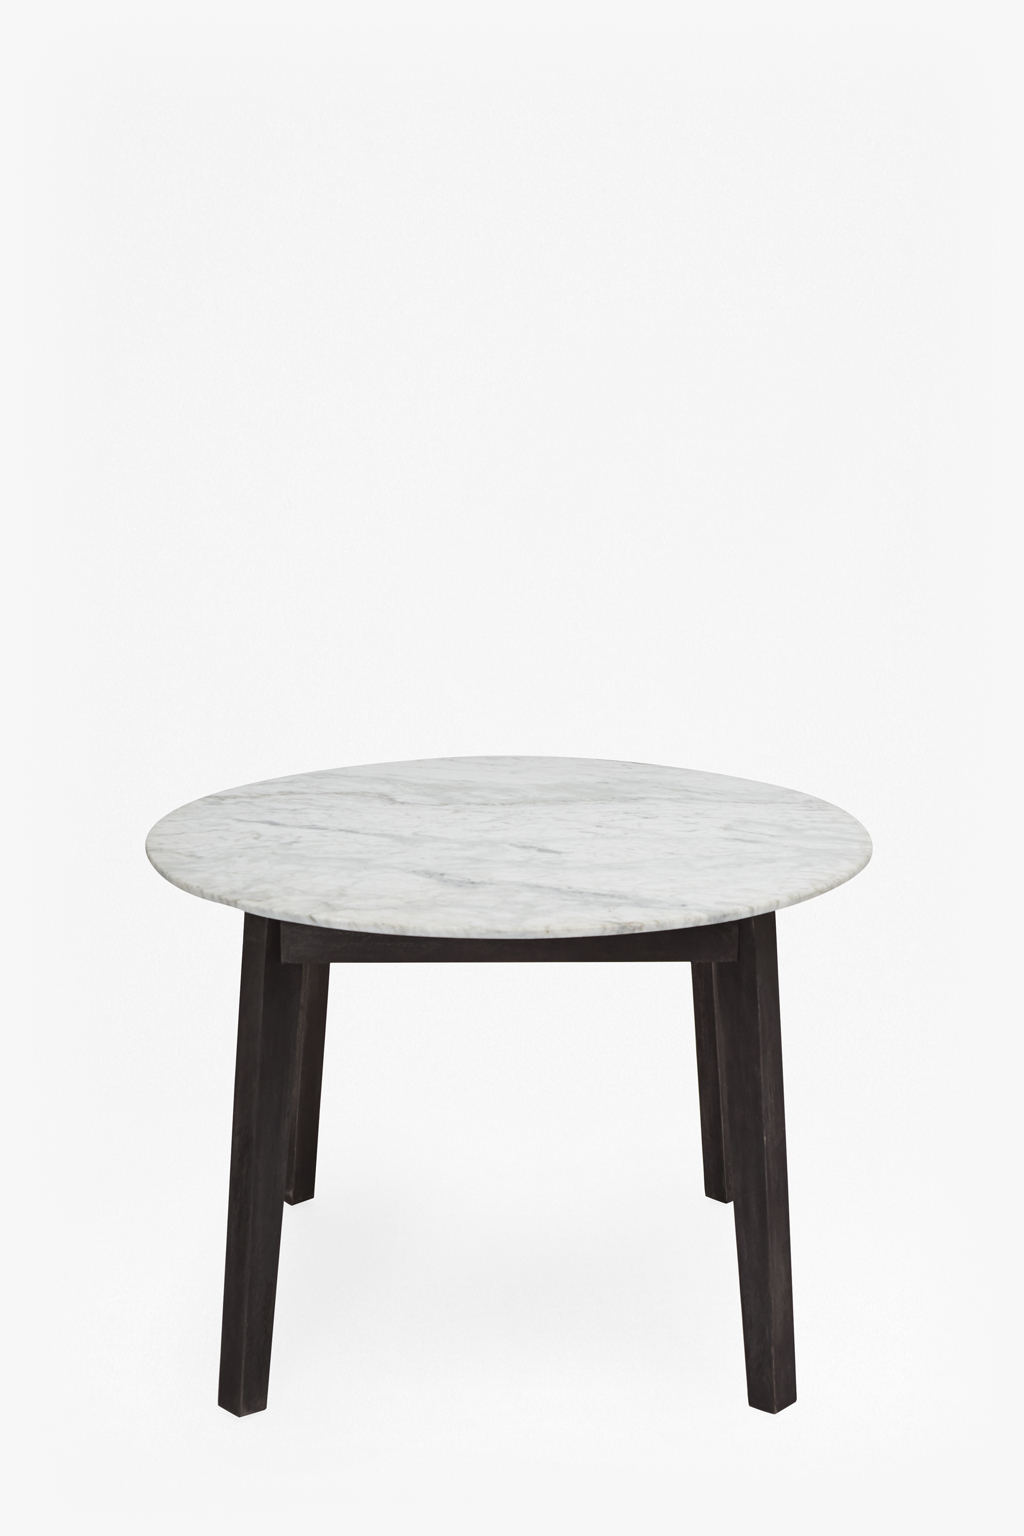 Agra Round Marble Dining Table  85d0ff1642